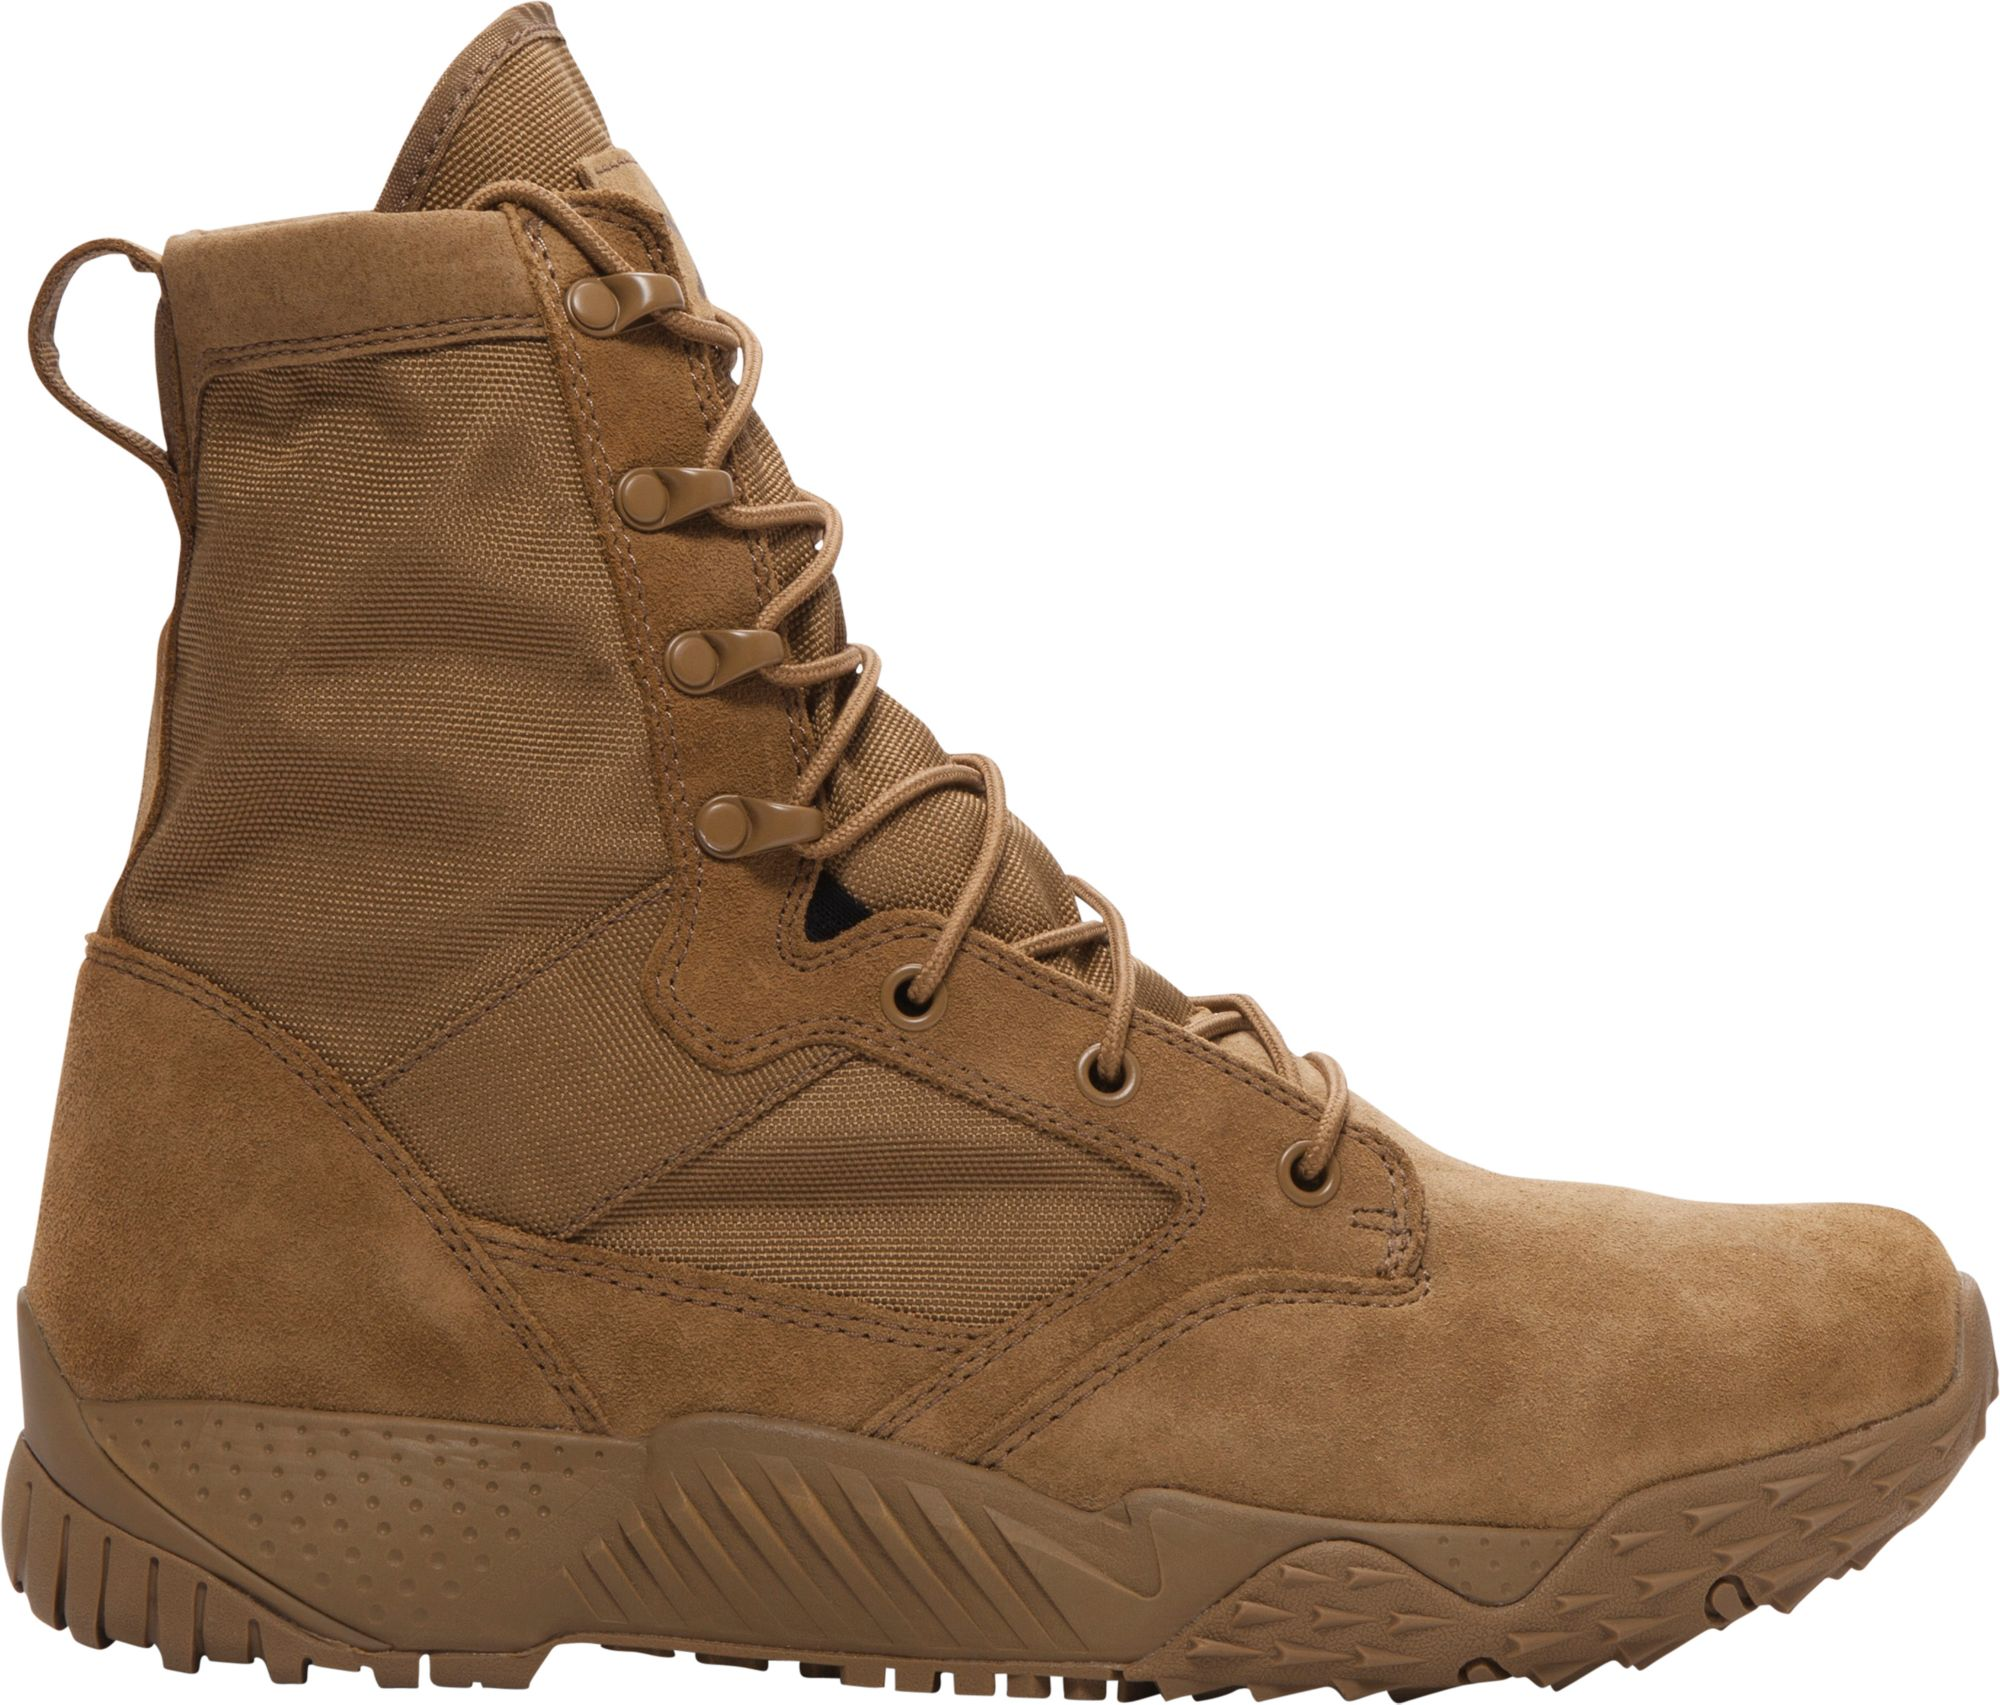 Tactical Boots | DICK'S Sporting Goods